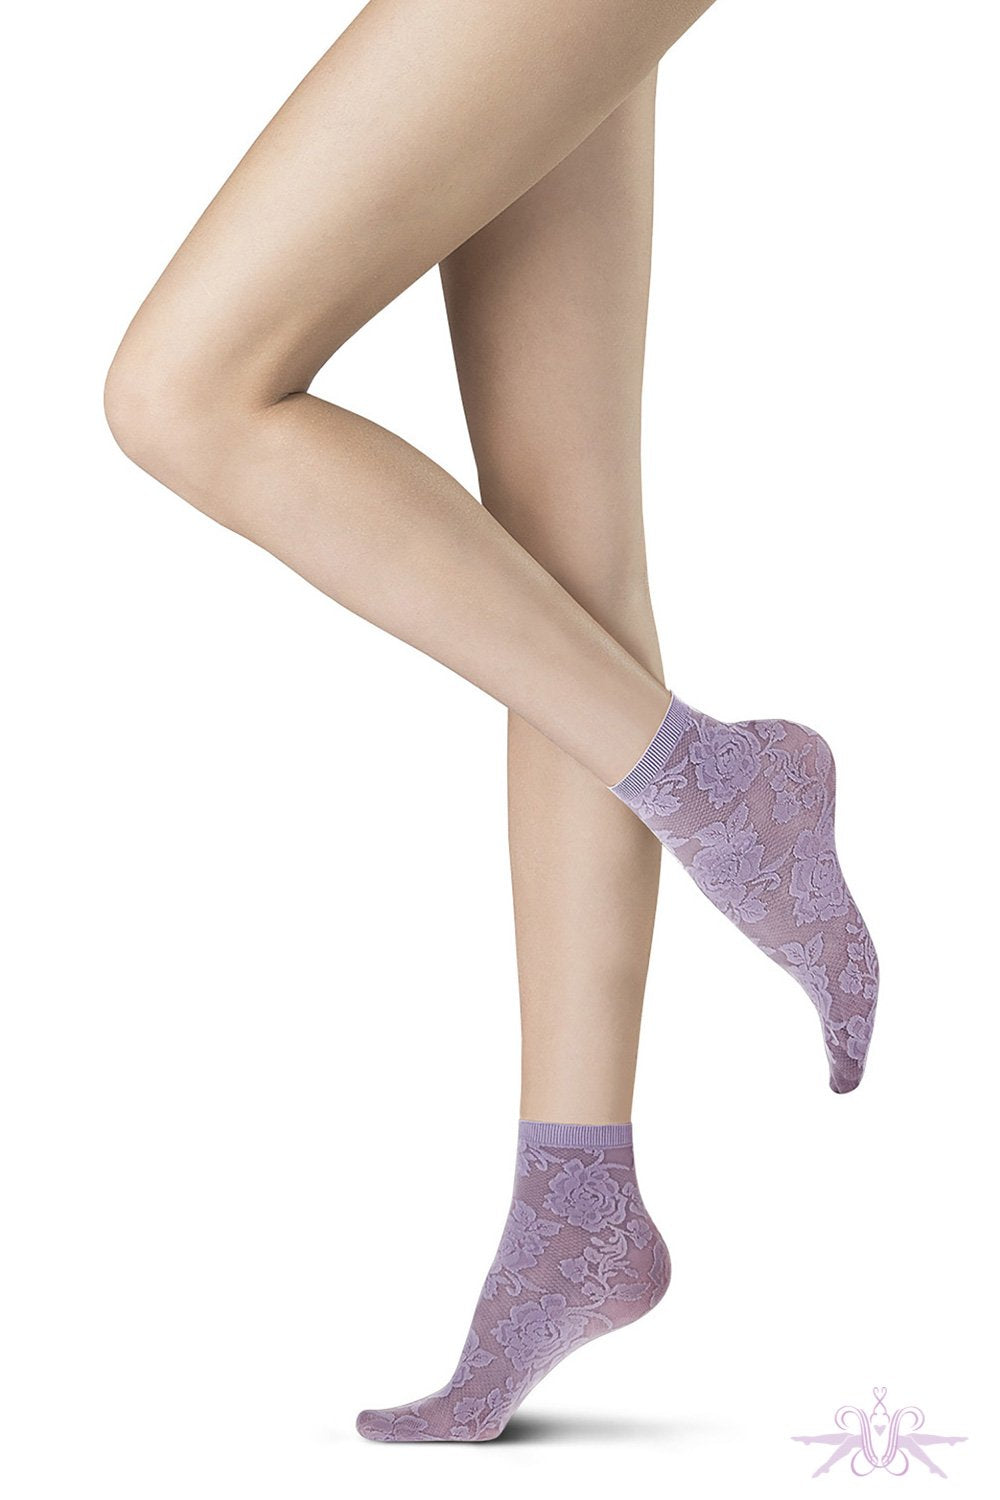 Oroblu All Colours Lace Sock - The Hosiery Box